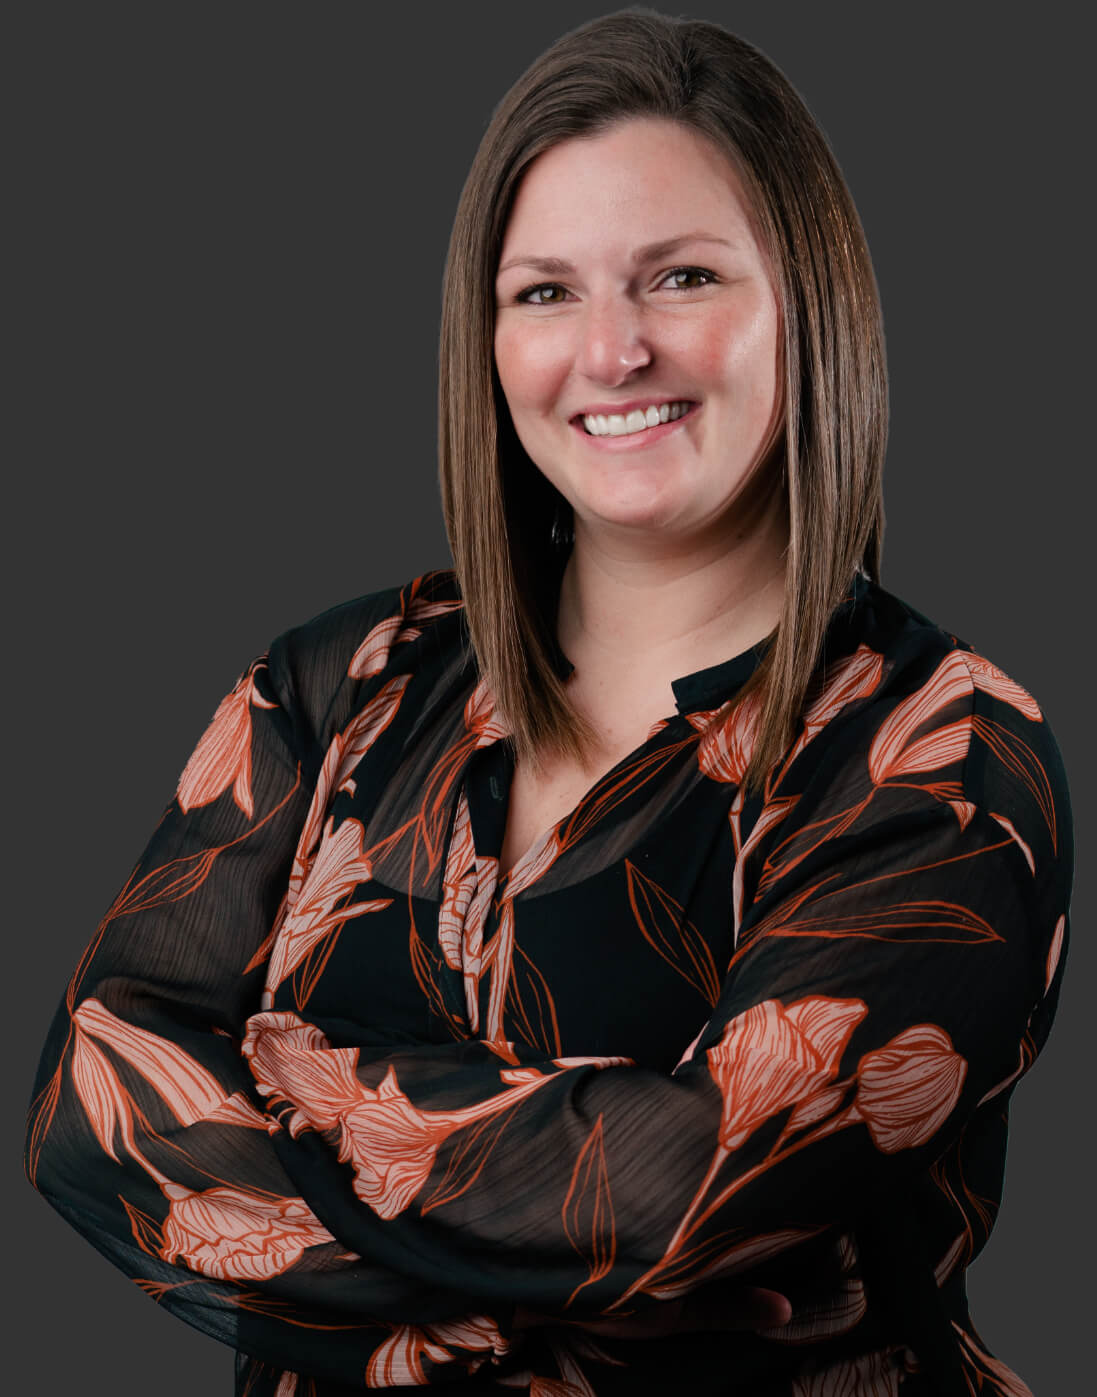 Erin Echternach Community Concierge Program